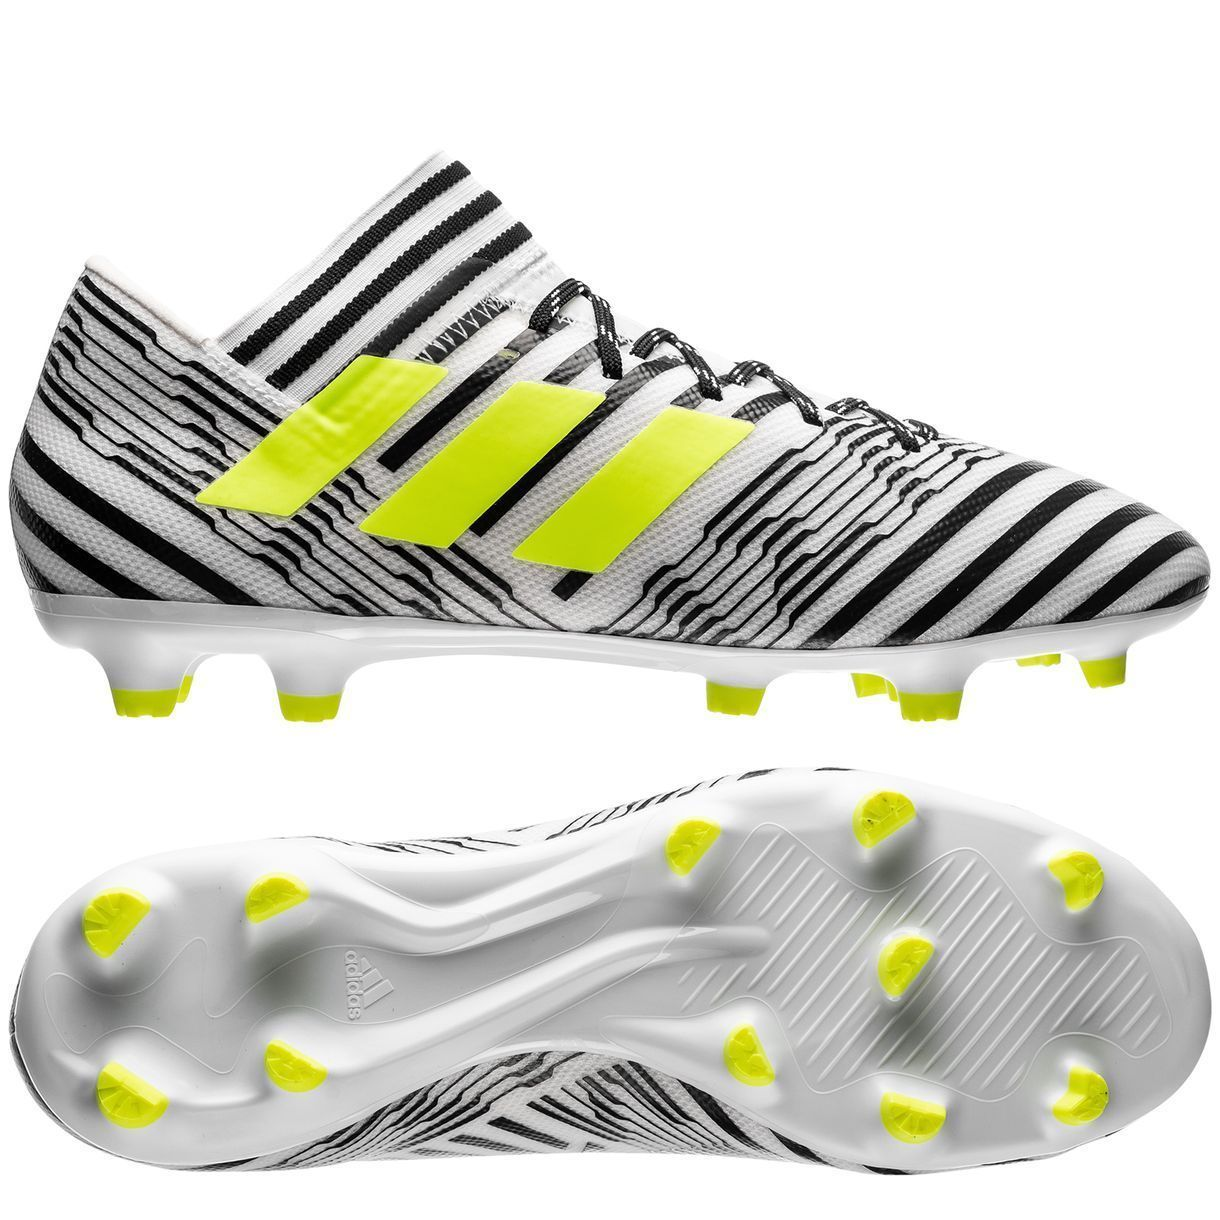 adidas Nemeziz 17.3 FG 2017 Soccer Shoes Cleats White / Black / Yellow  Brand New